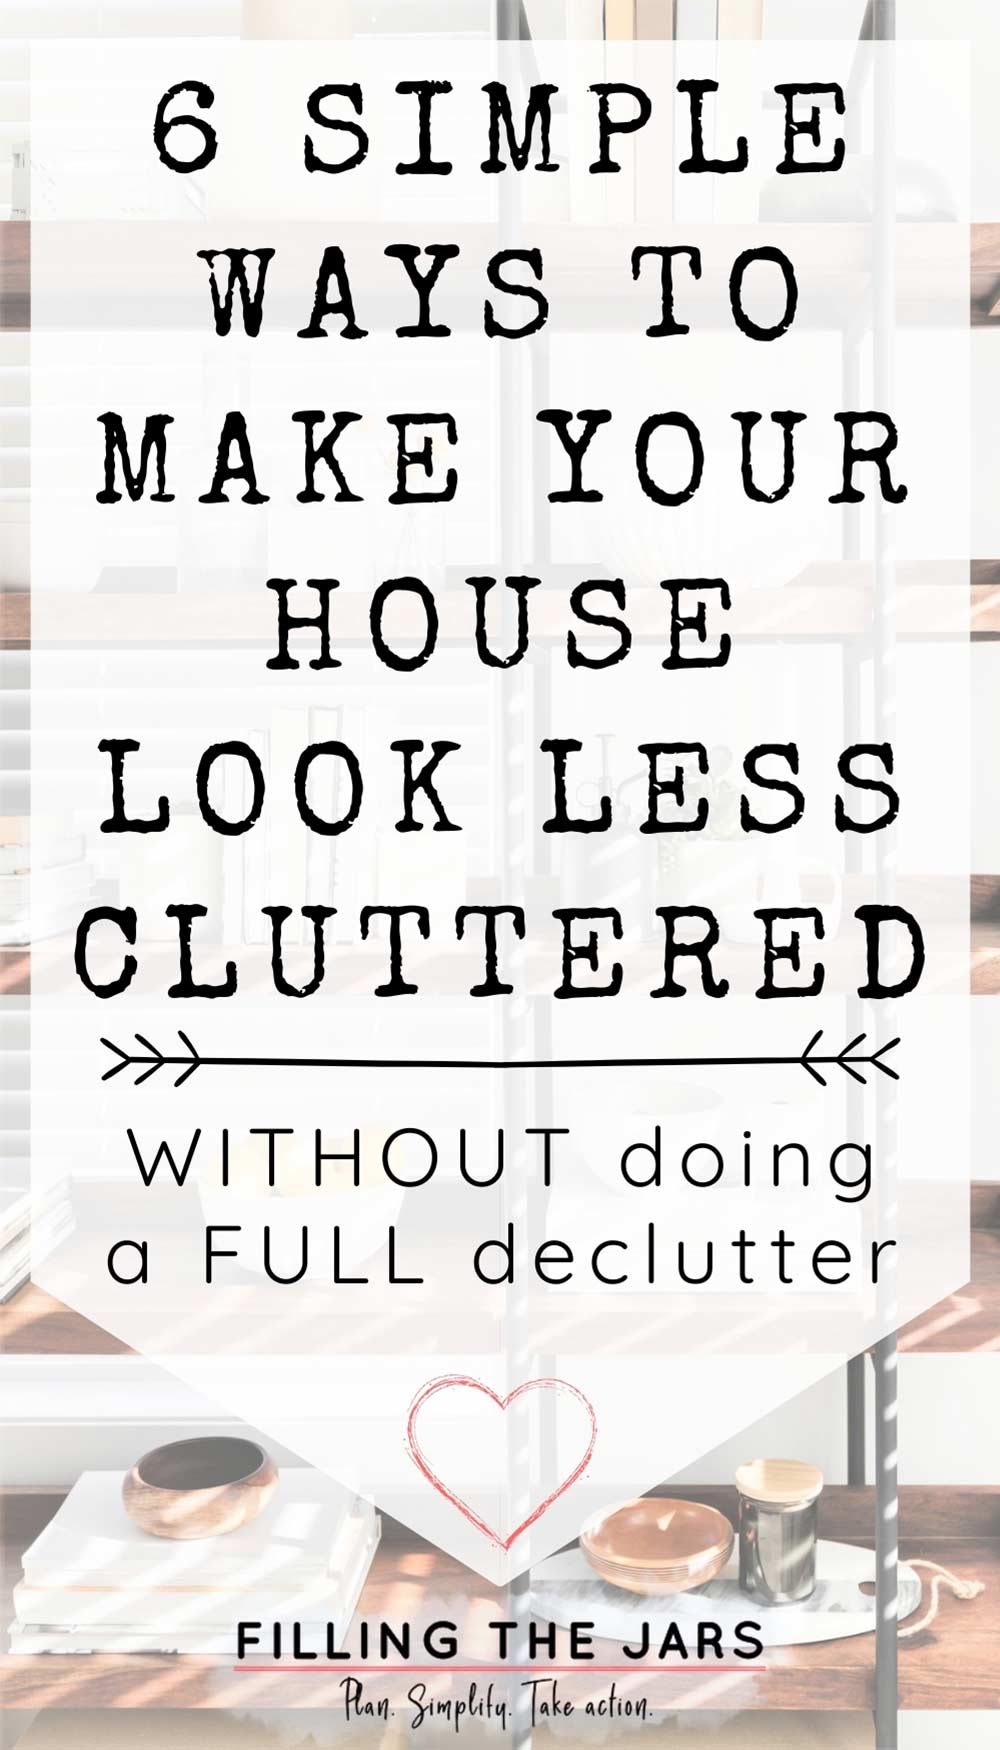 Text how to make your house look less cluttered on white background over image of carefully chosen white and neutral decor items on wood and iron shelves in front of white wall.